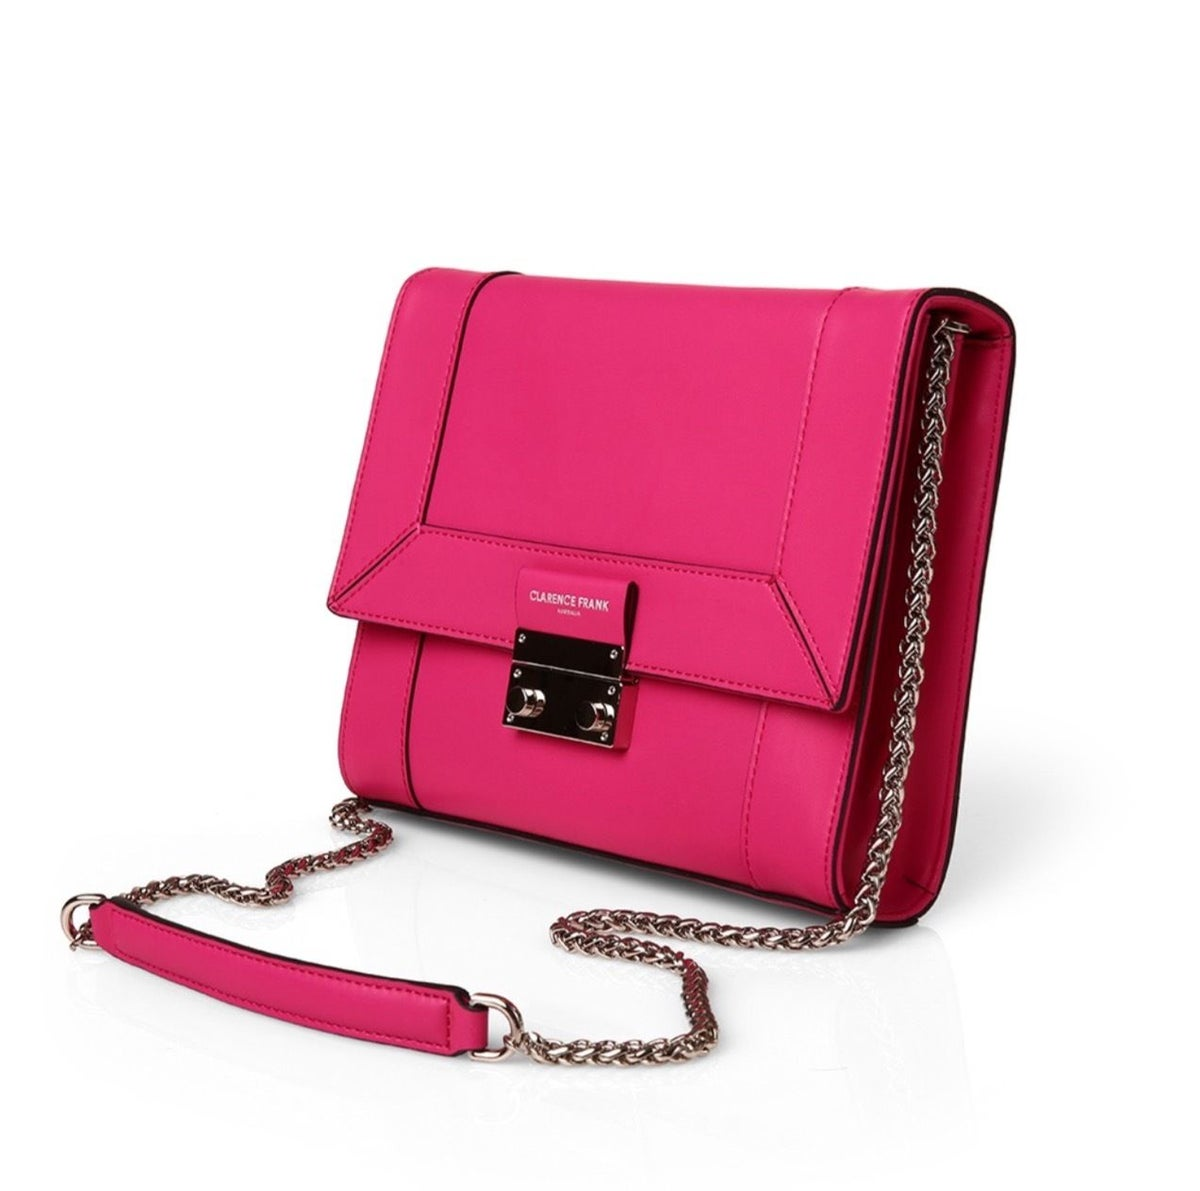 Image of Jayne Cross Body - Black, Tan, Pink, Purple